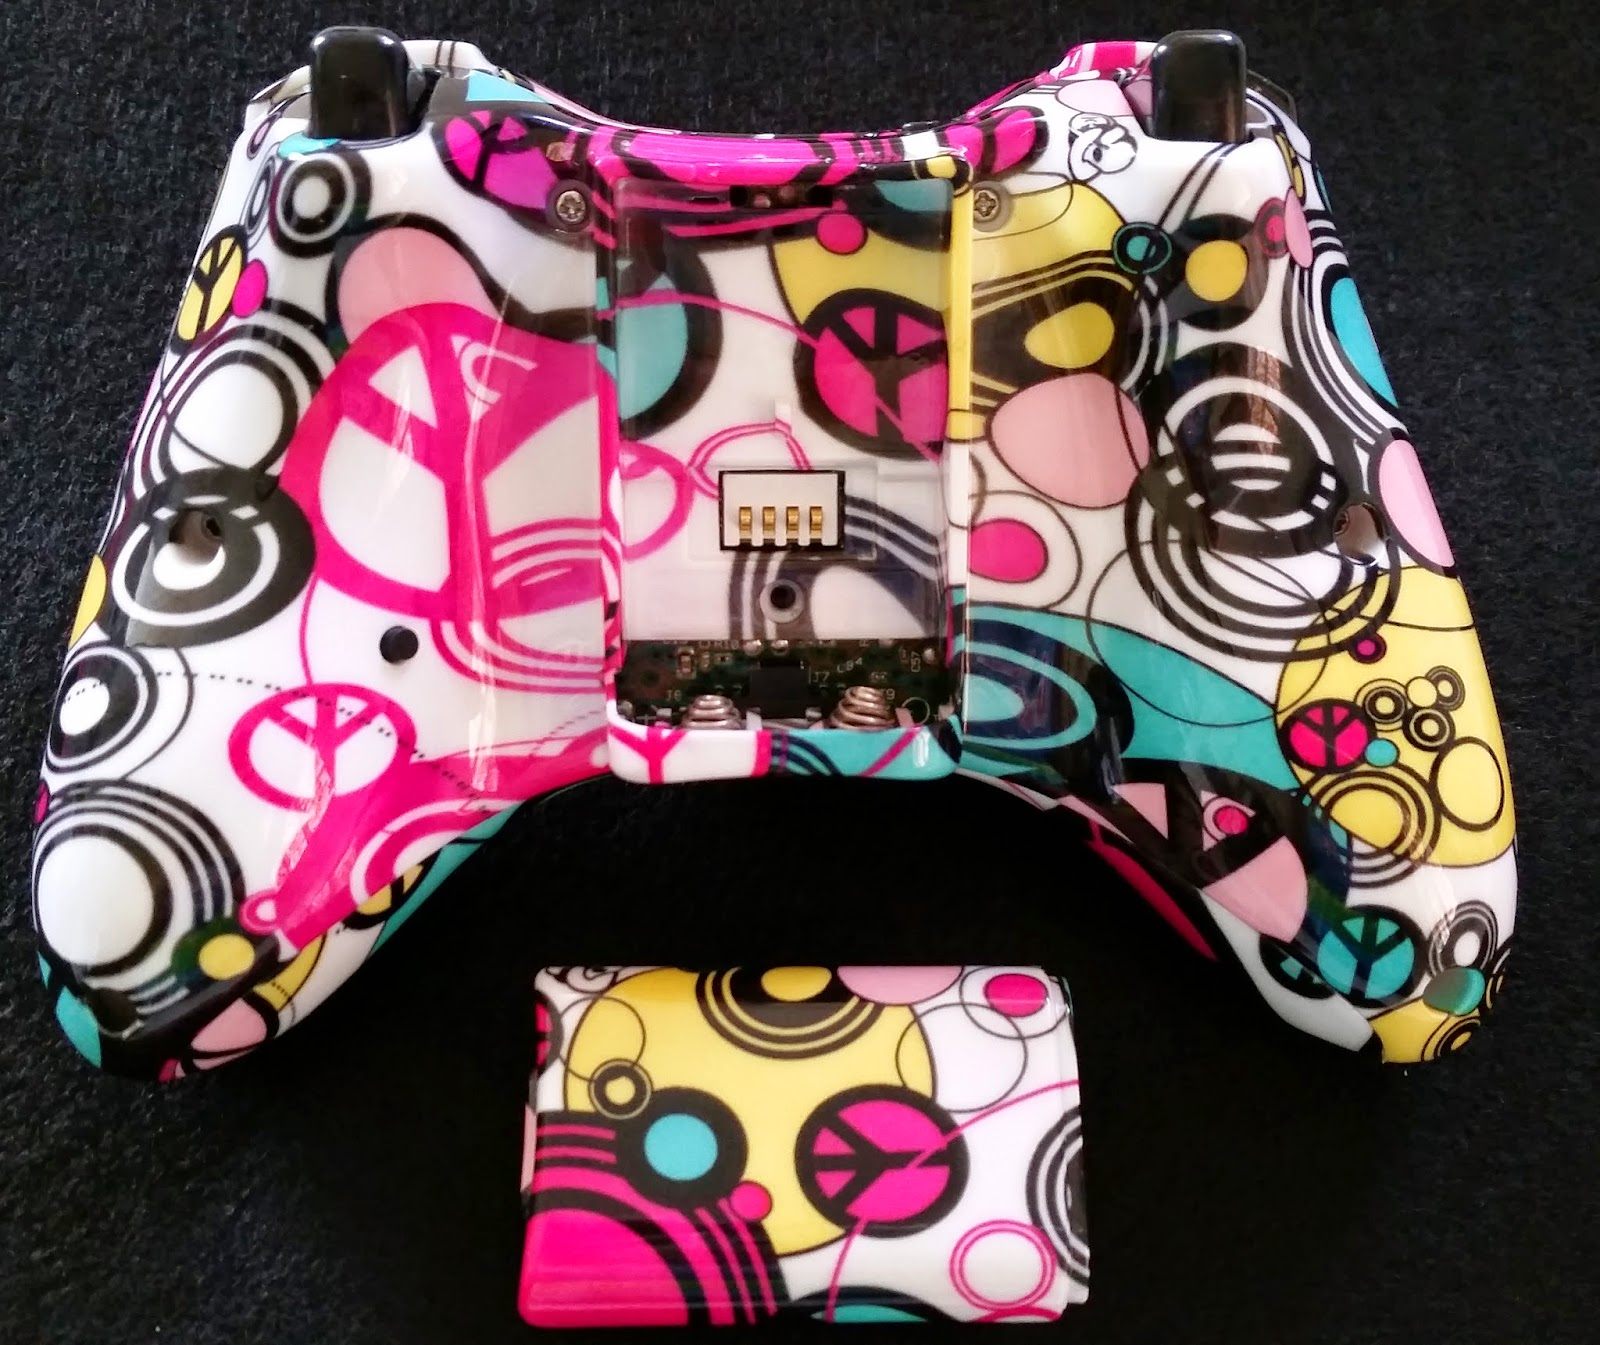 Controller Modz Video Game Controllers (Accessories Review